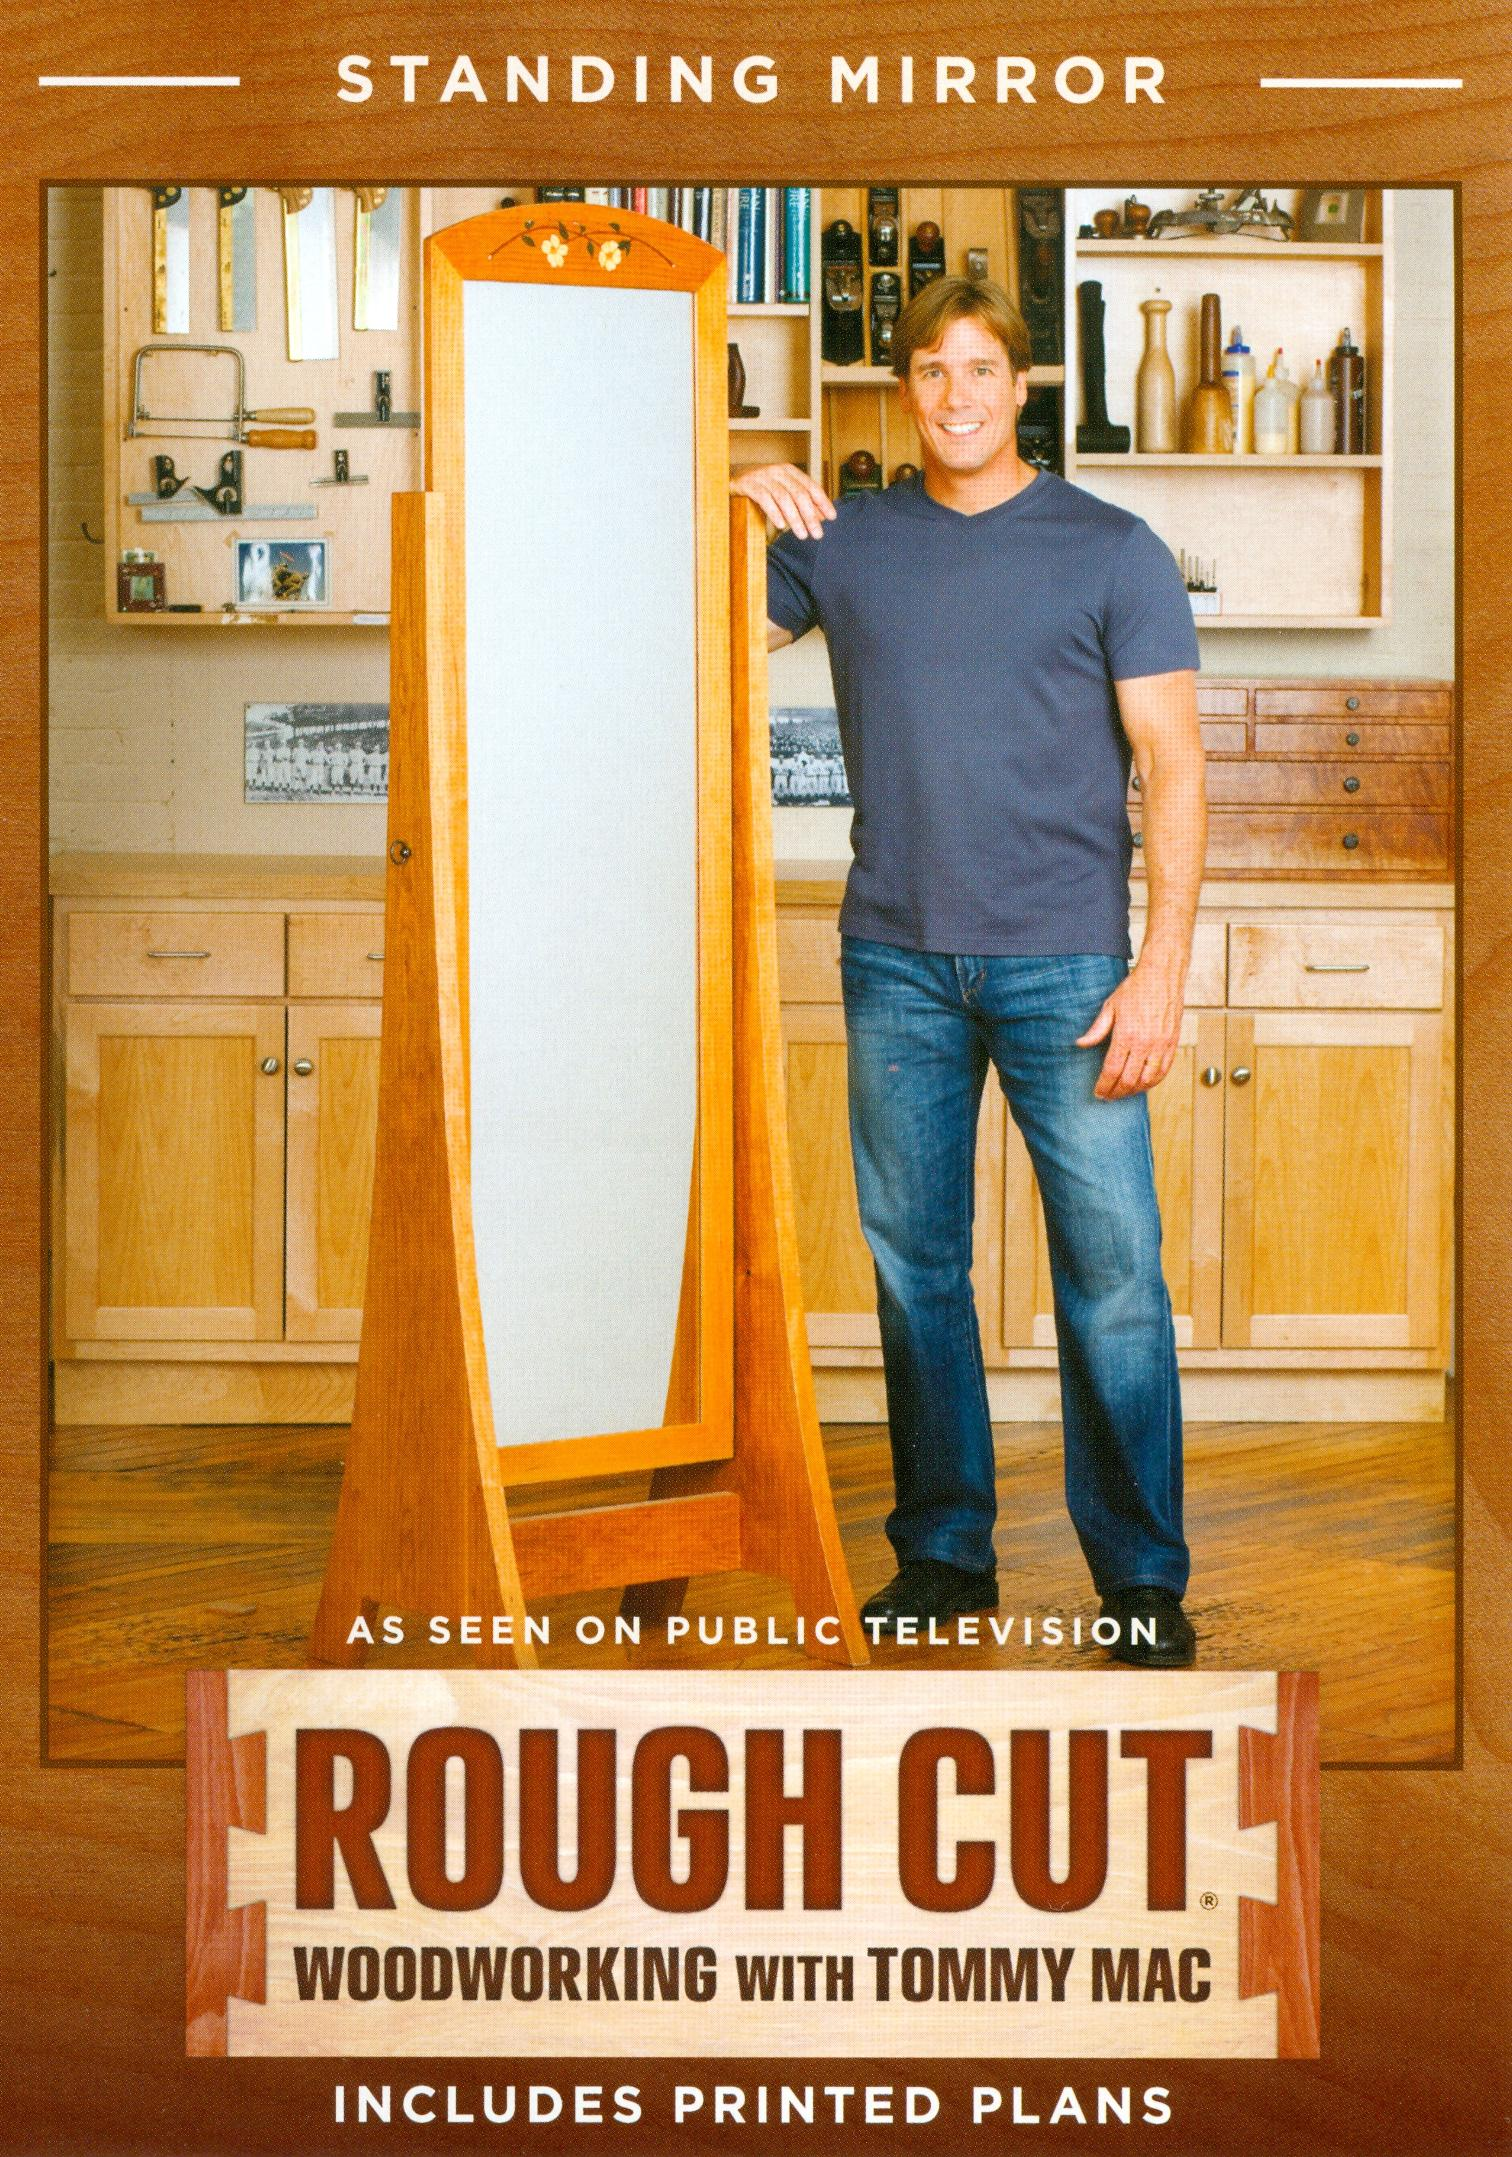 Rough Cut - Woodworking with Tommy Mac: Standing Mirror